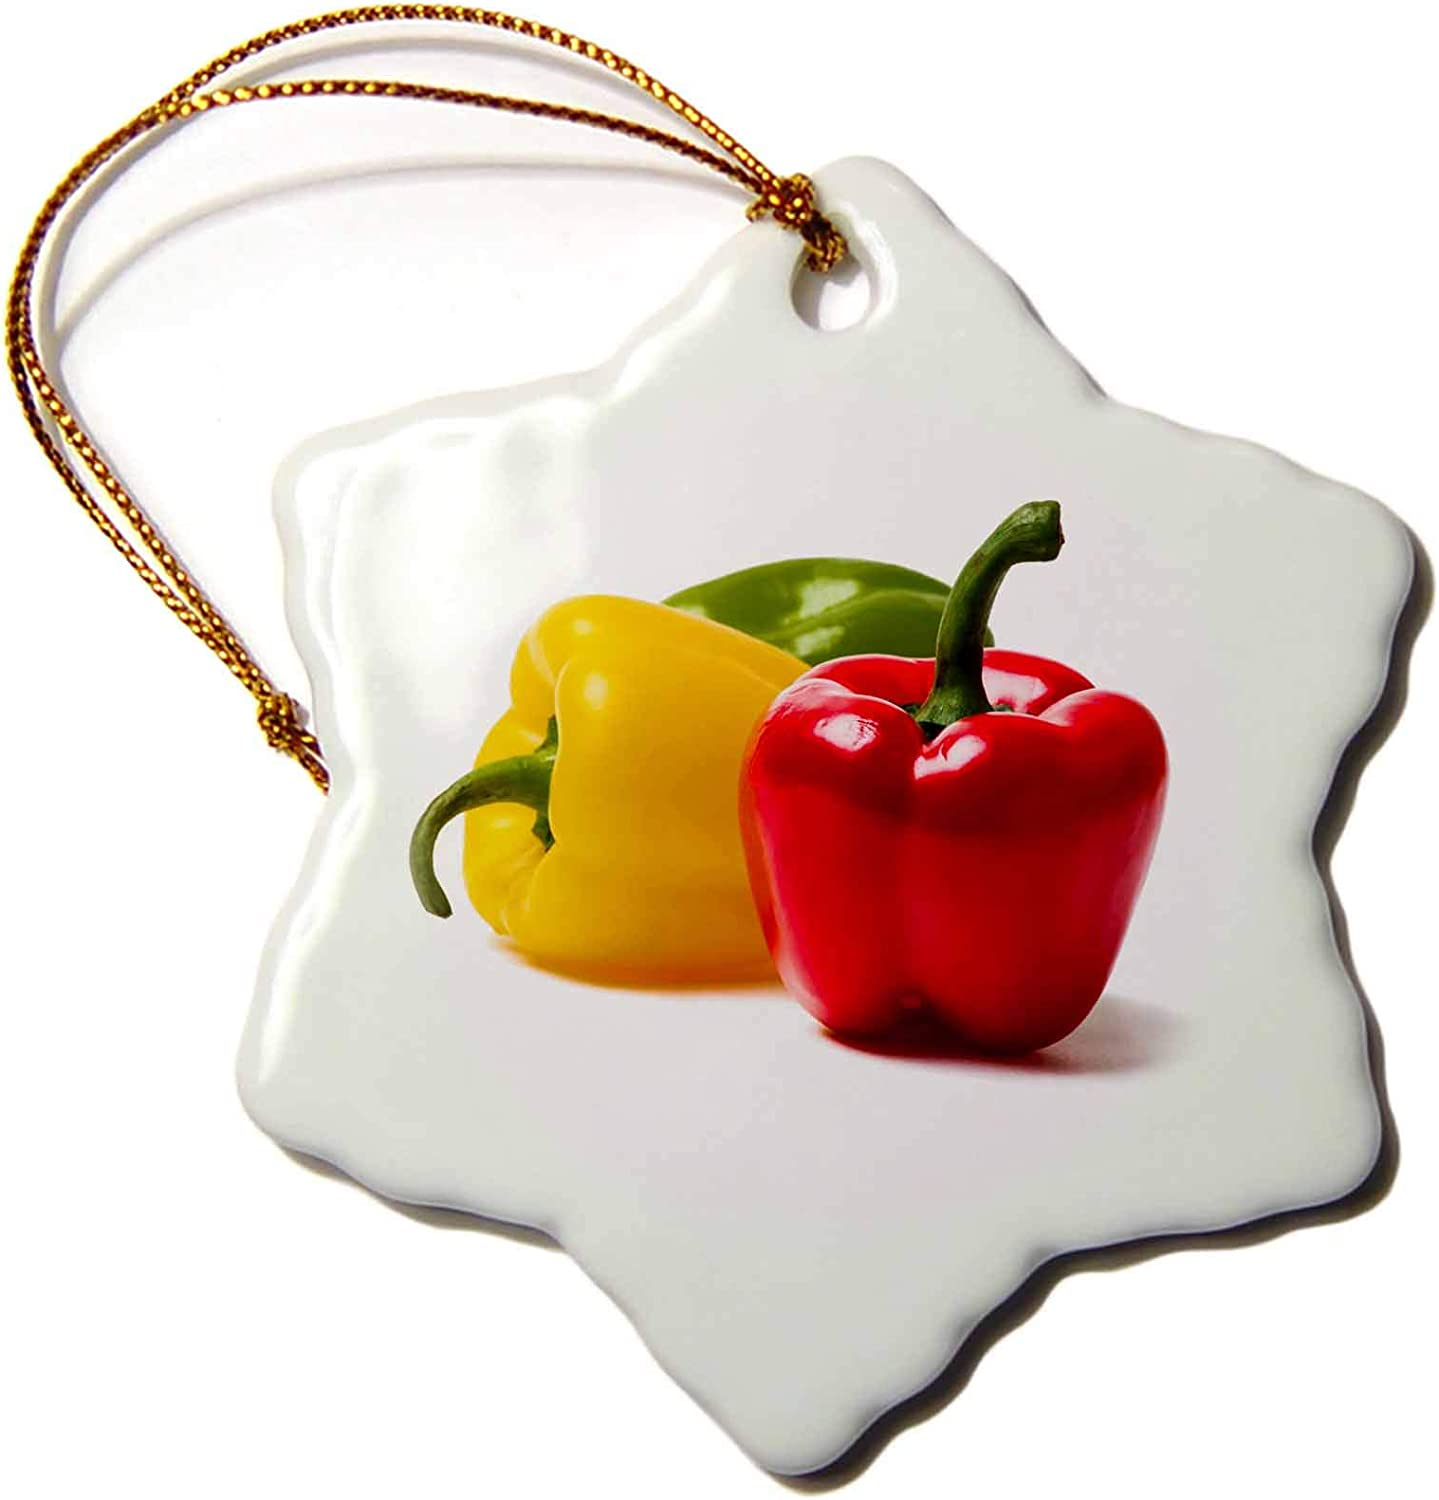 3dRose Red, Yellow, Green Bell Peppers. Red to The Front. White. - Ornaments (ORN_272079_1)